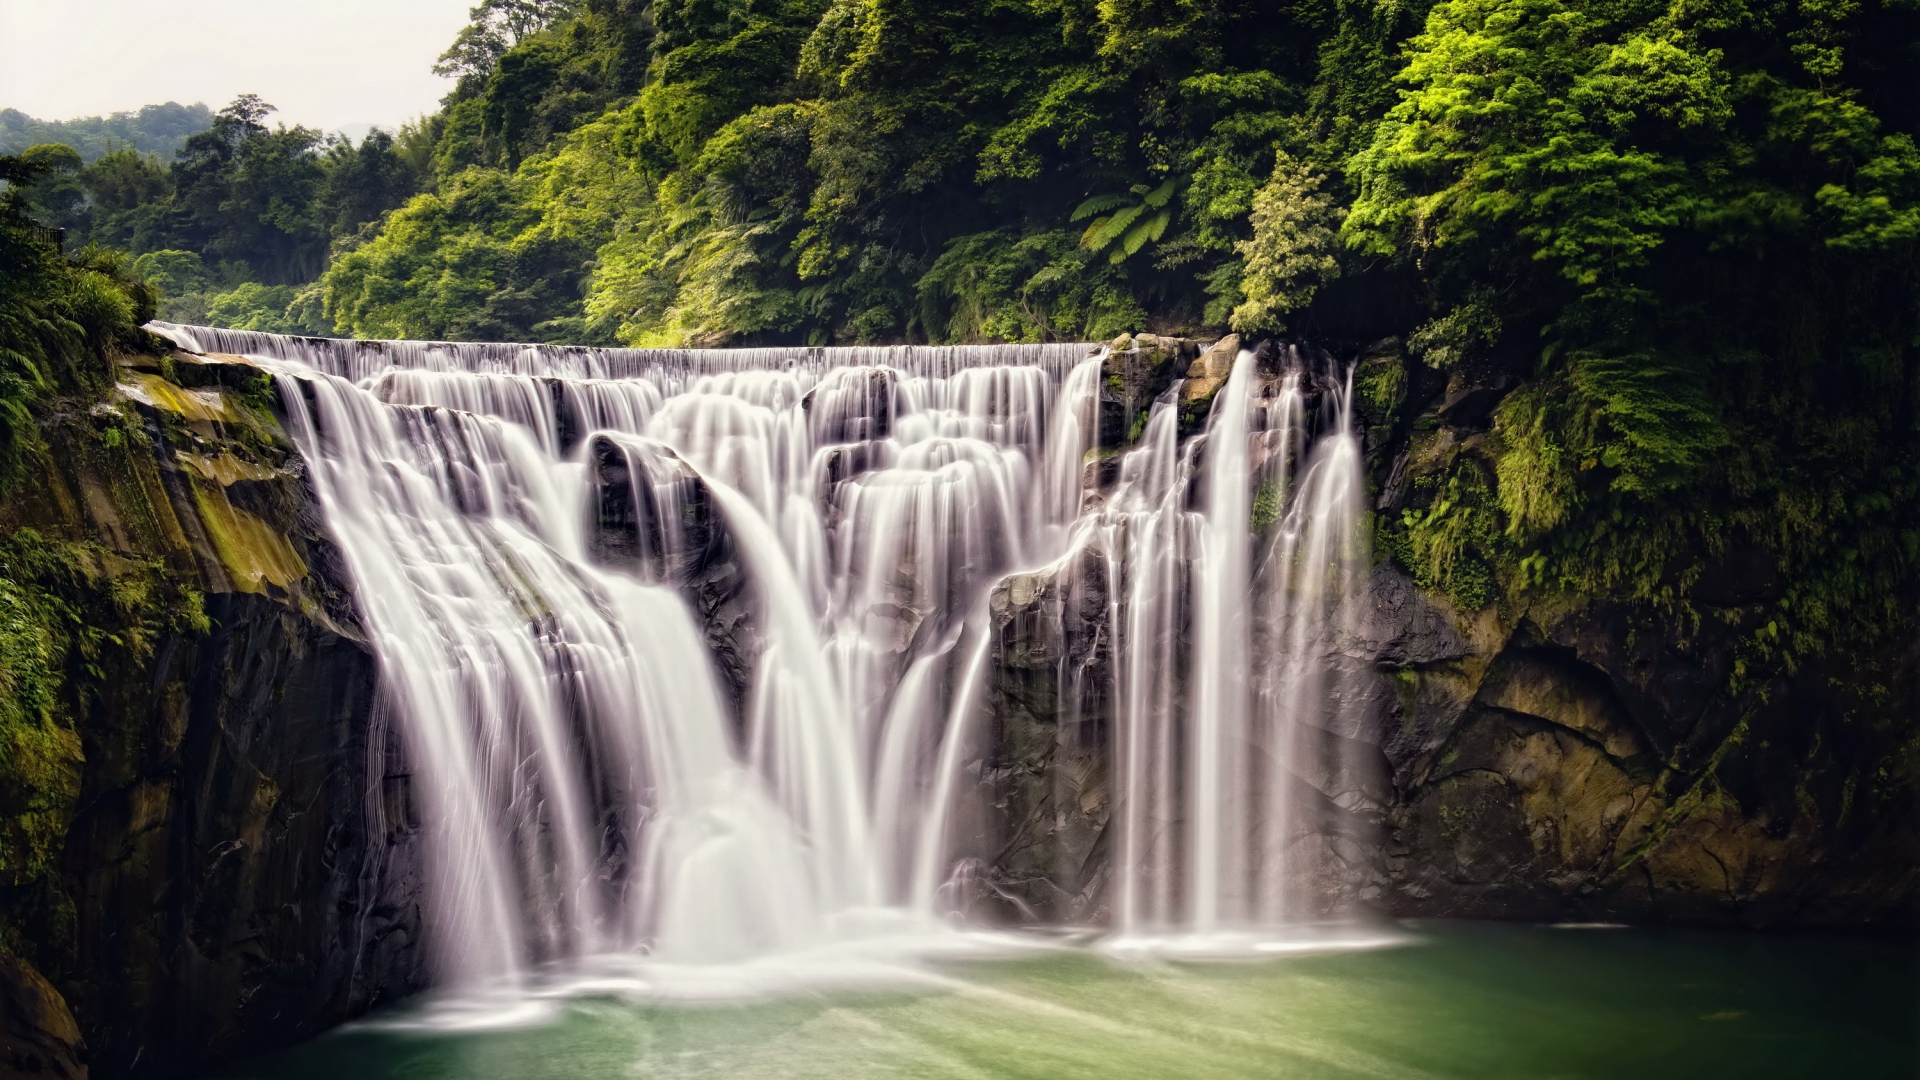 how to get to shifen waterfall from shifen station